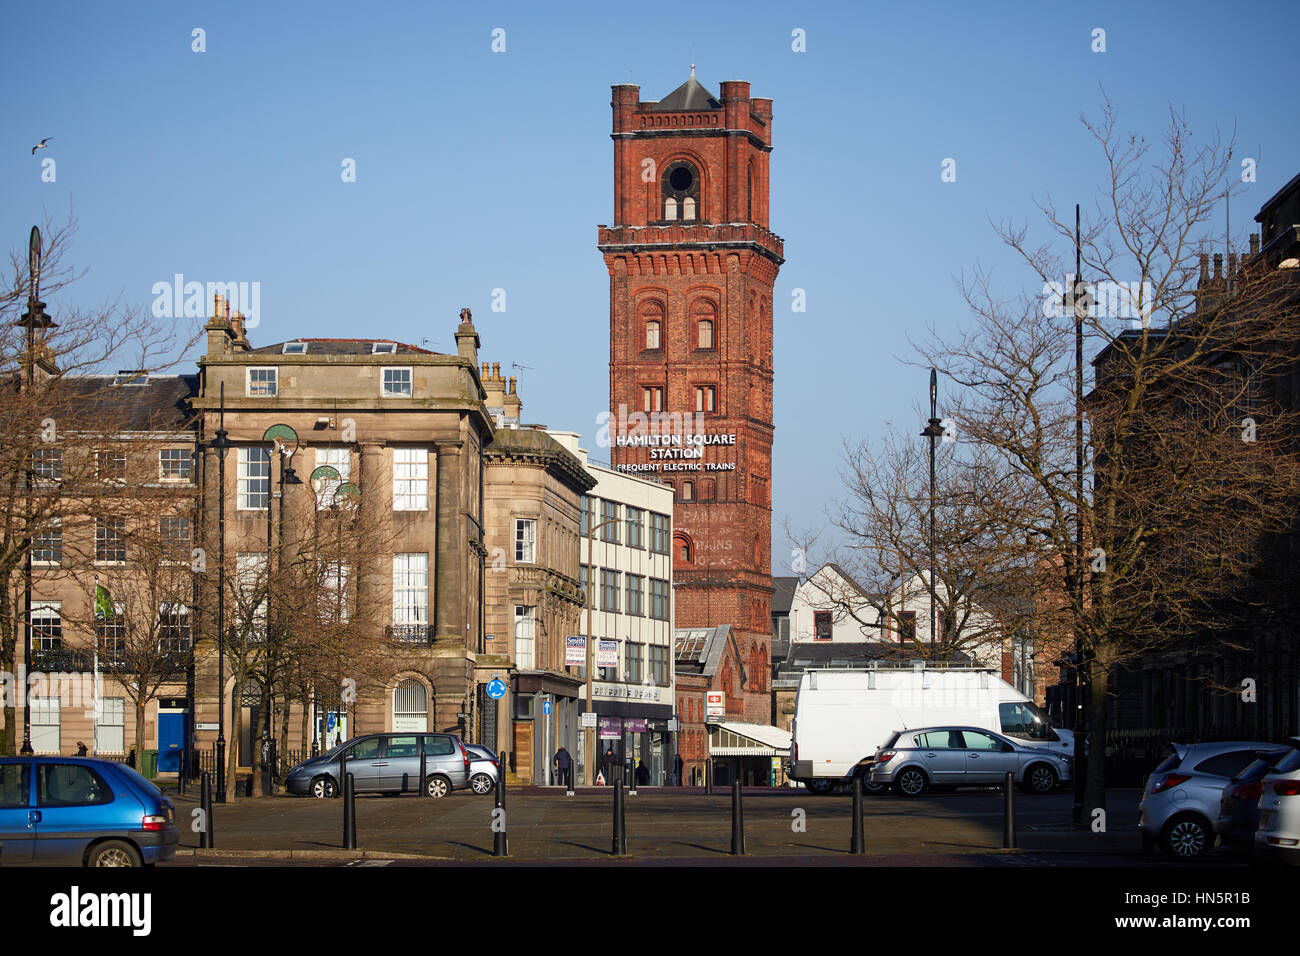 Blue sky sunny day at Birkenhead landmark exterior of Hamilton Square Station's brick victorian tower in Wallasey, - Stock Image